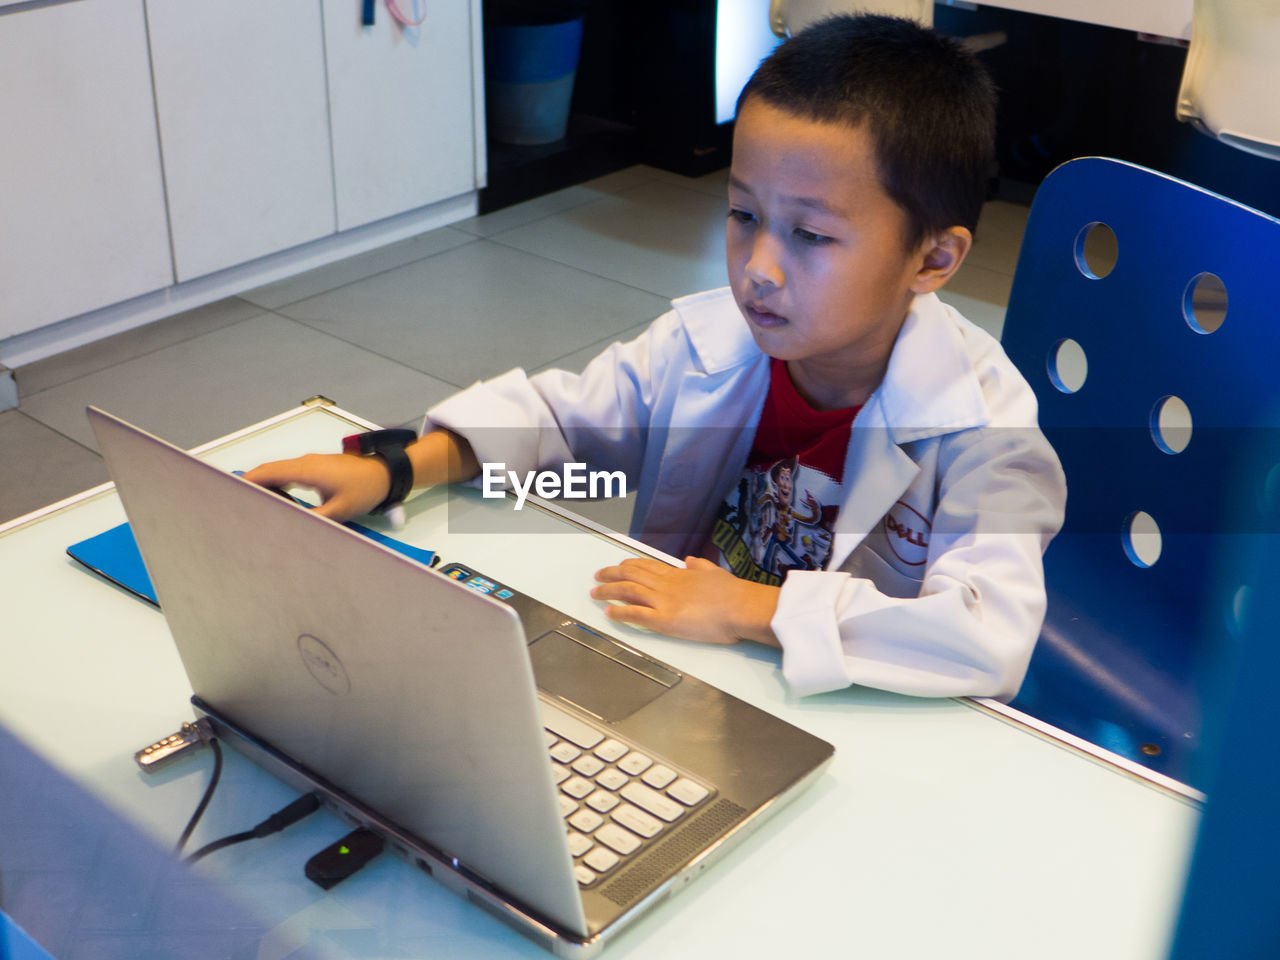 boys, childhood, education, learning, technology, real people, laptop, indoors, wireless technology, sitting, elementary age, desk, one person, classroom, concentration, using laptop, student, school uniform, day, people